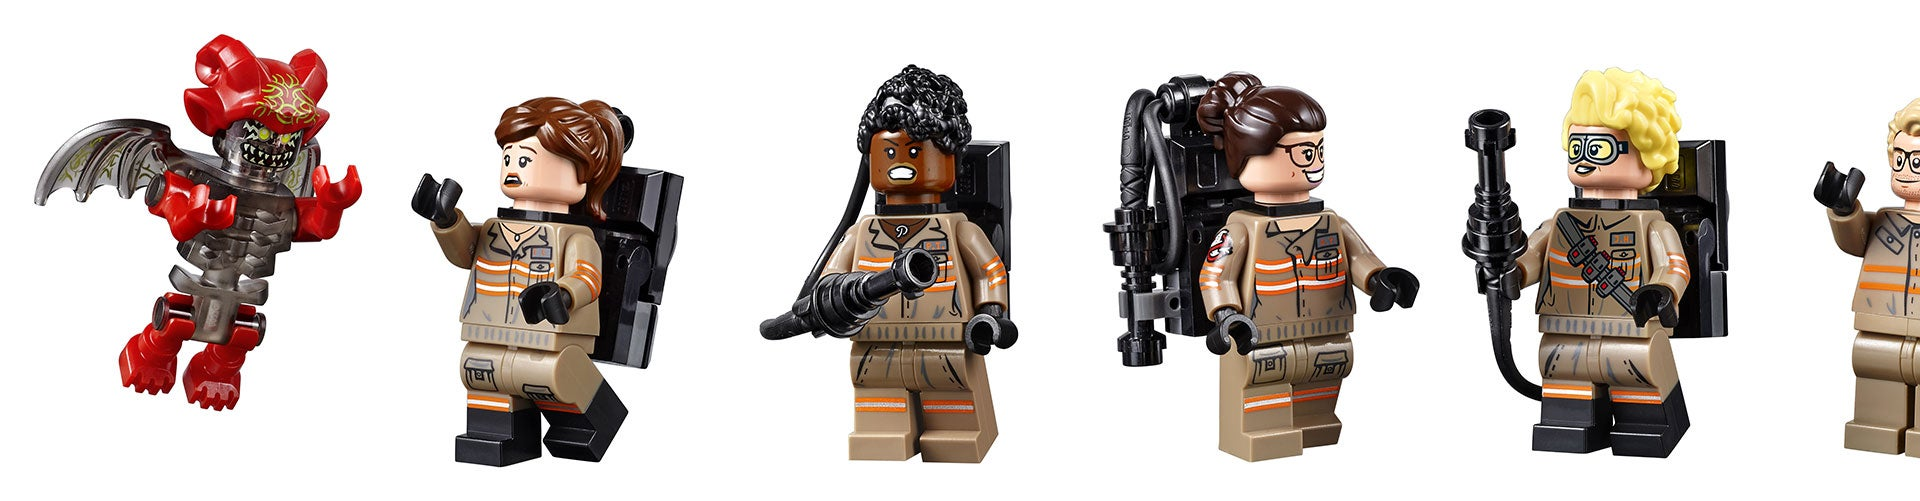 The New Ghostbusters (And Kevin) Get The LEGO Treatment